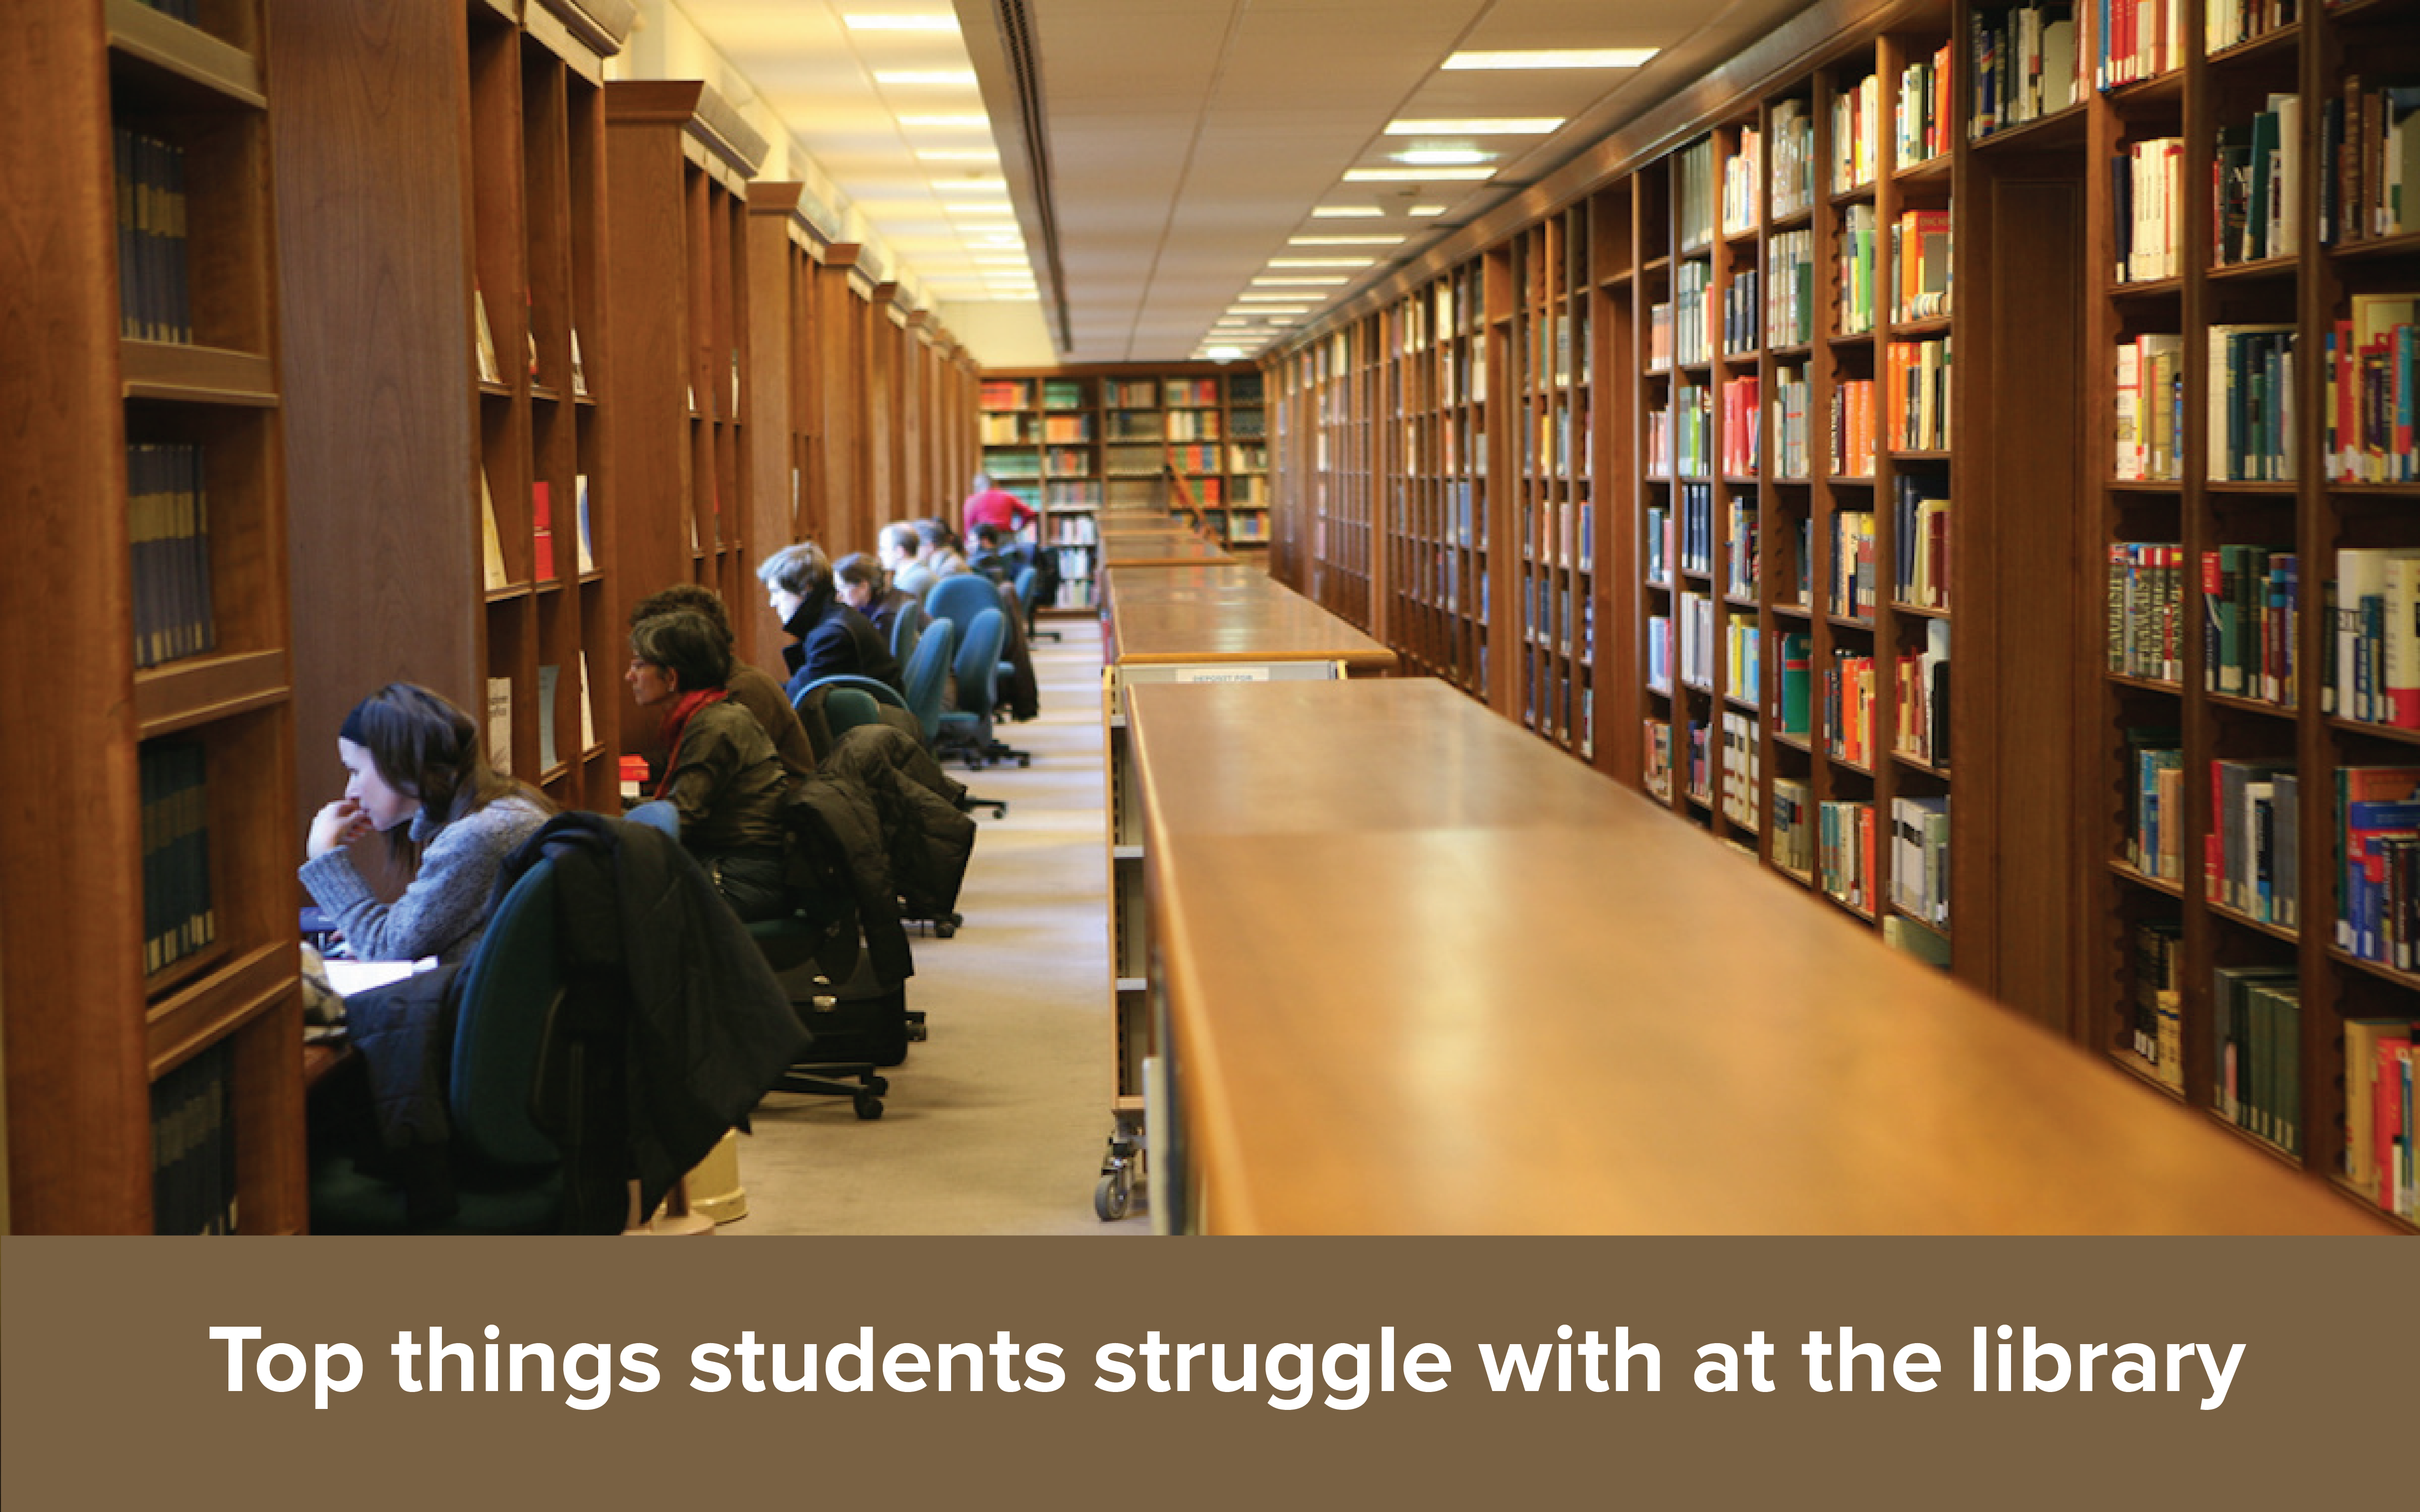 Top things students struggle with at the library